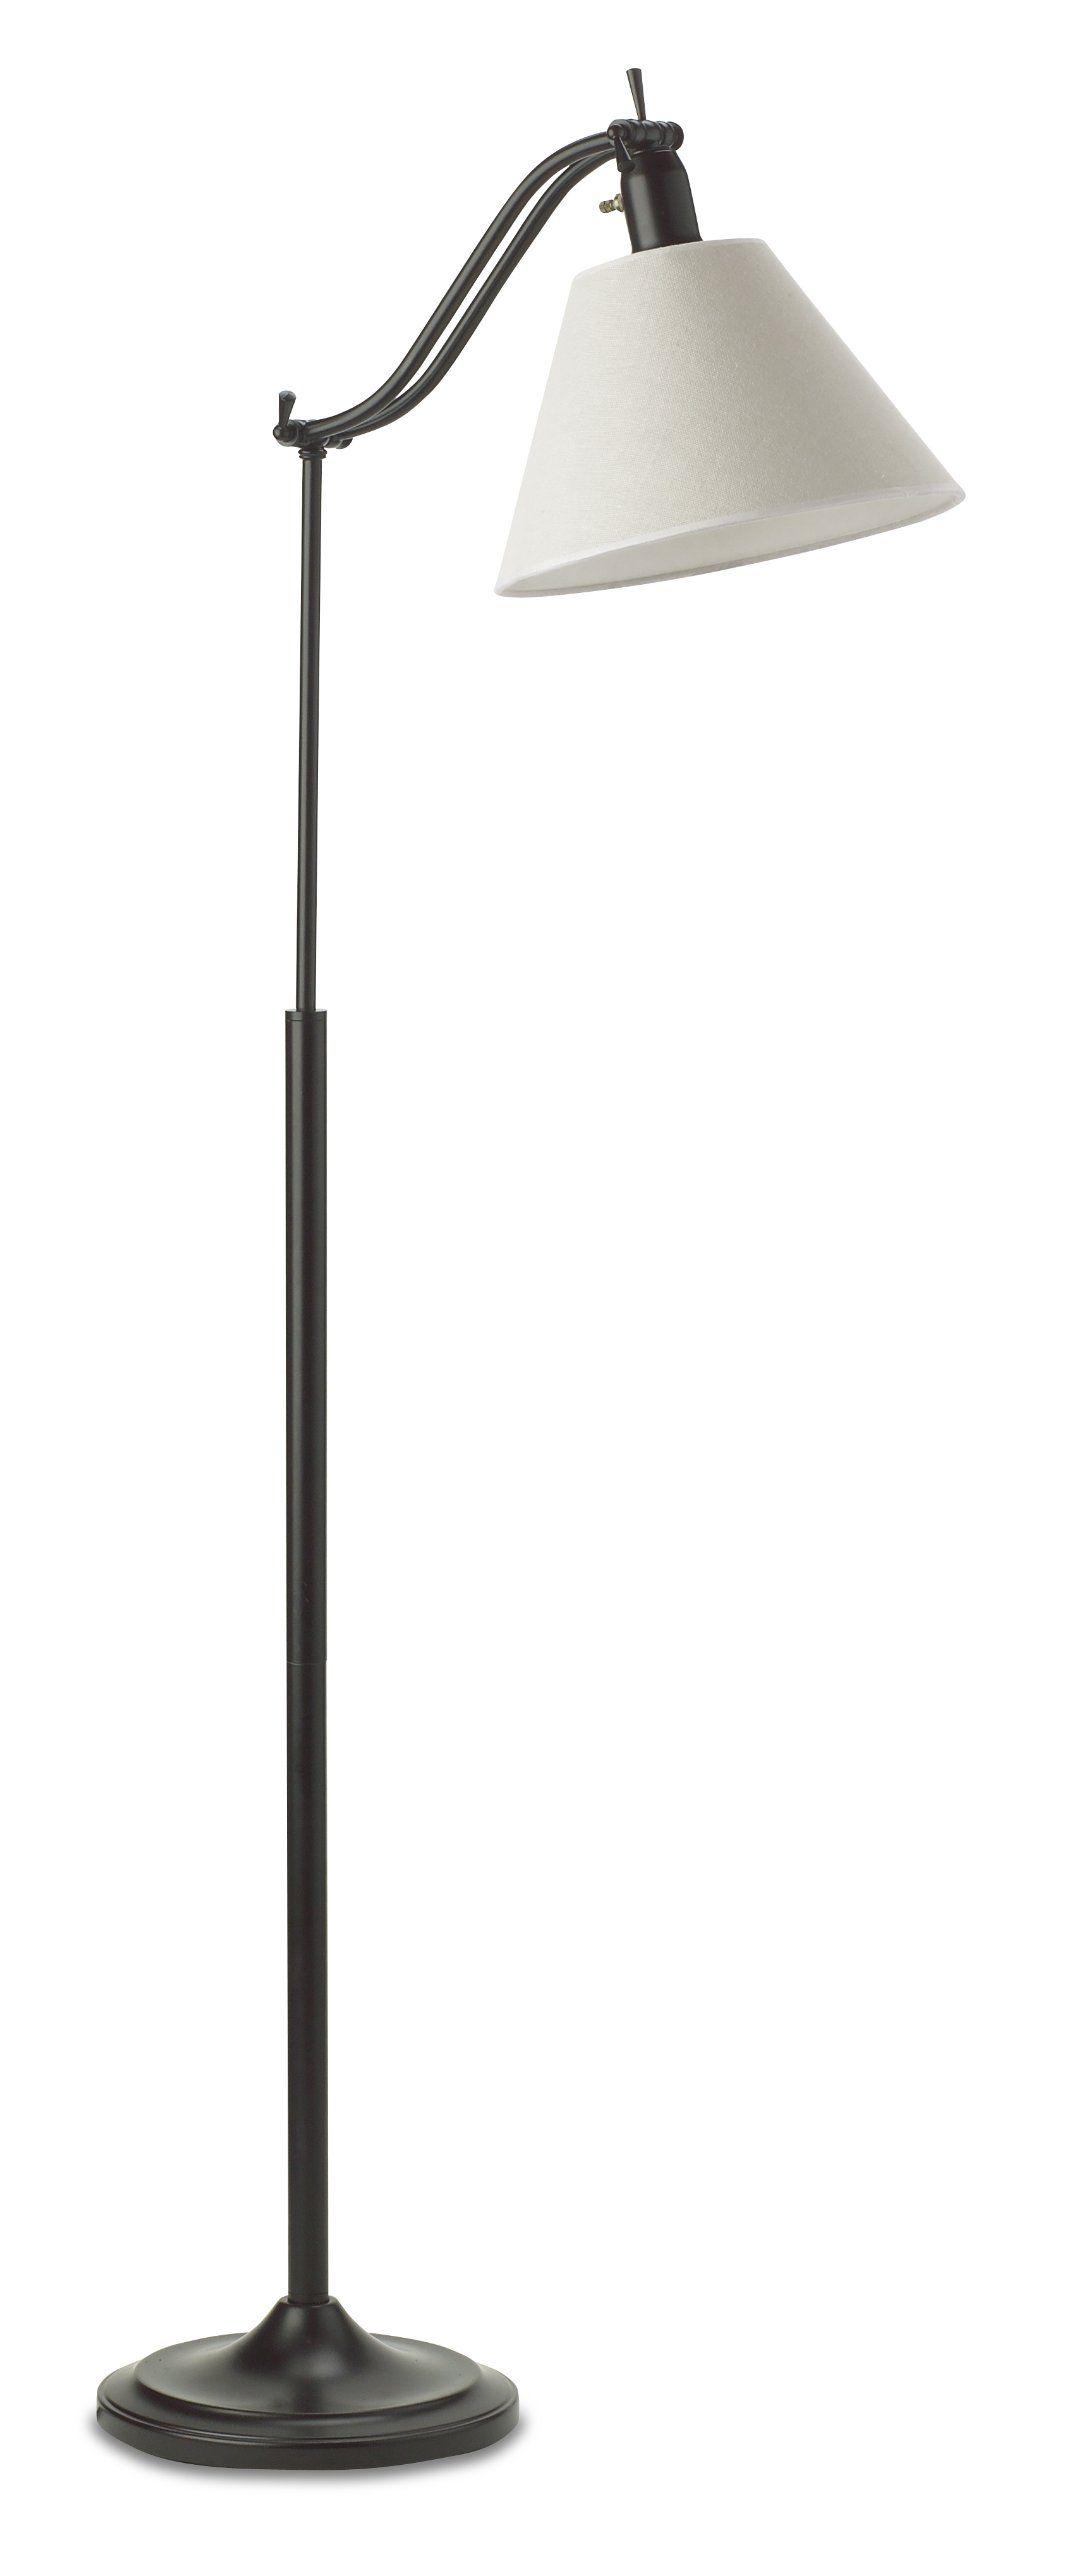 Ottlite 20m15bzd shpr 20 watt marietta floor lamp antiqued bronze ottlite 20m15bzd shpr 20 watt marietta floor lamp antiqued bronze ott light aloadofball Images